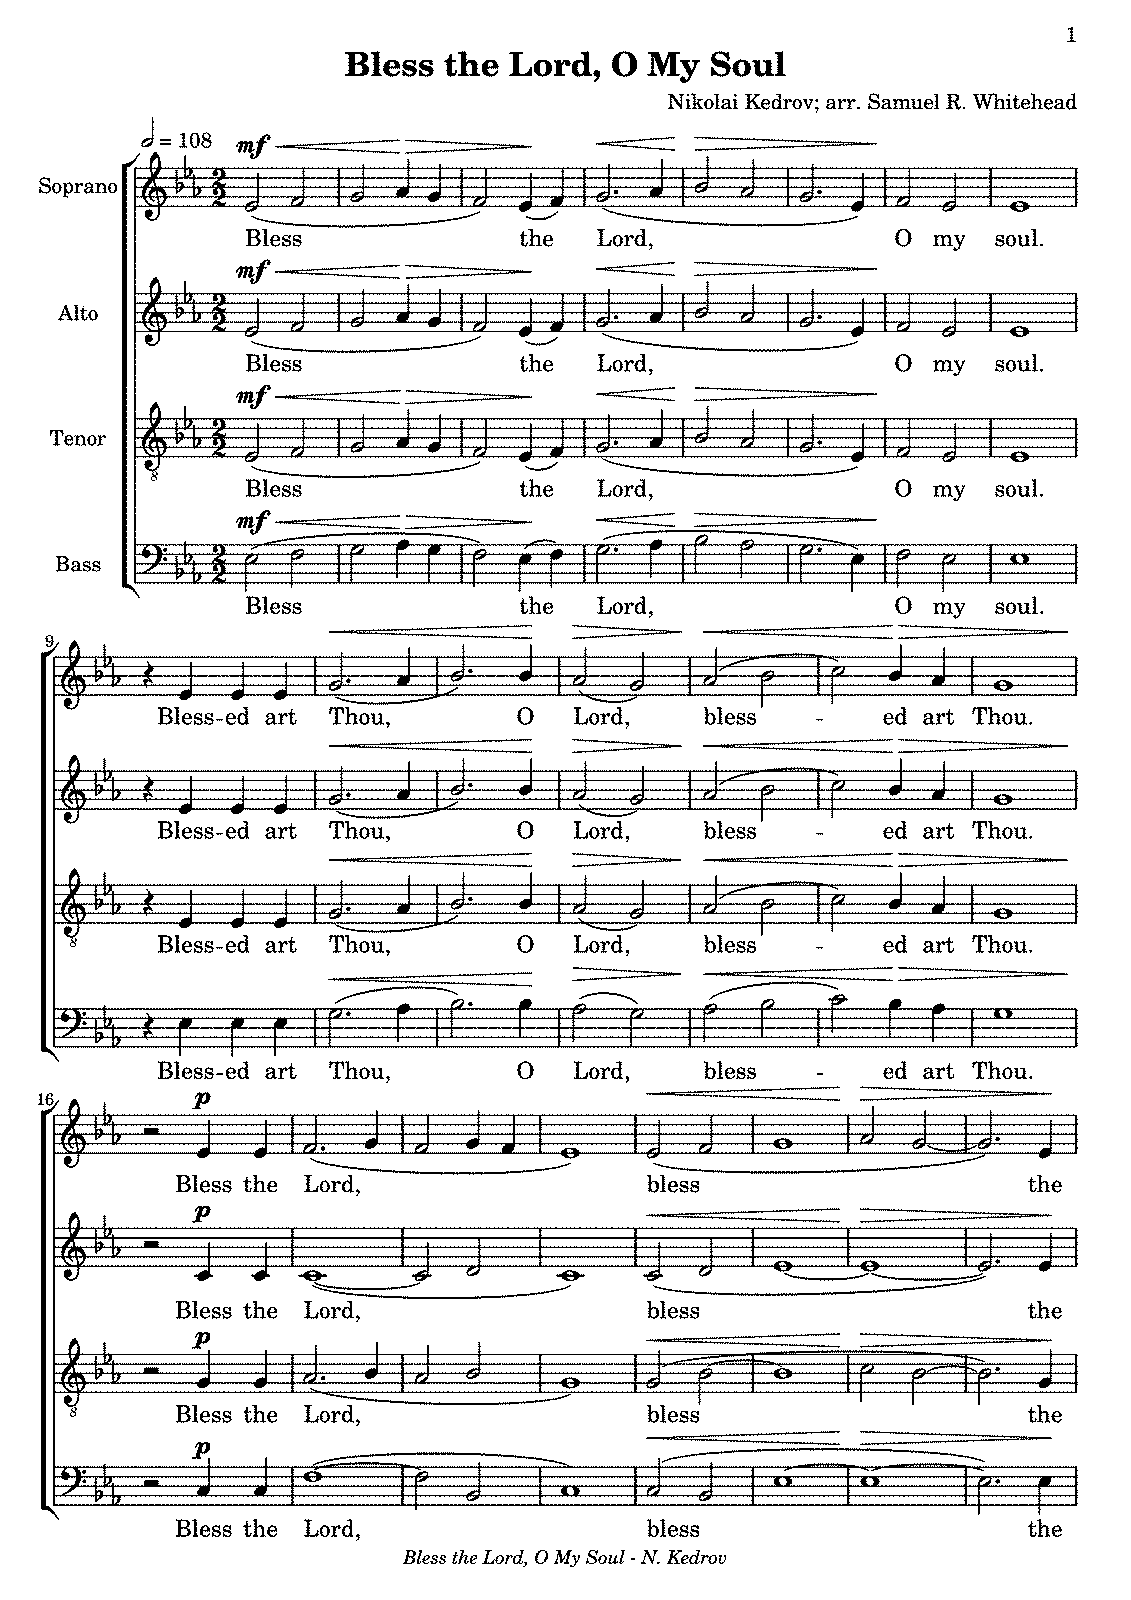 PMLP675274-Bless the Lord, O My Soul SATB.pdf